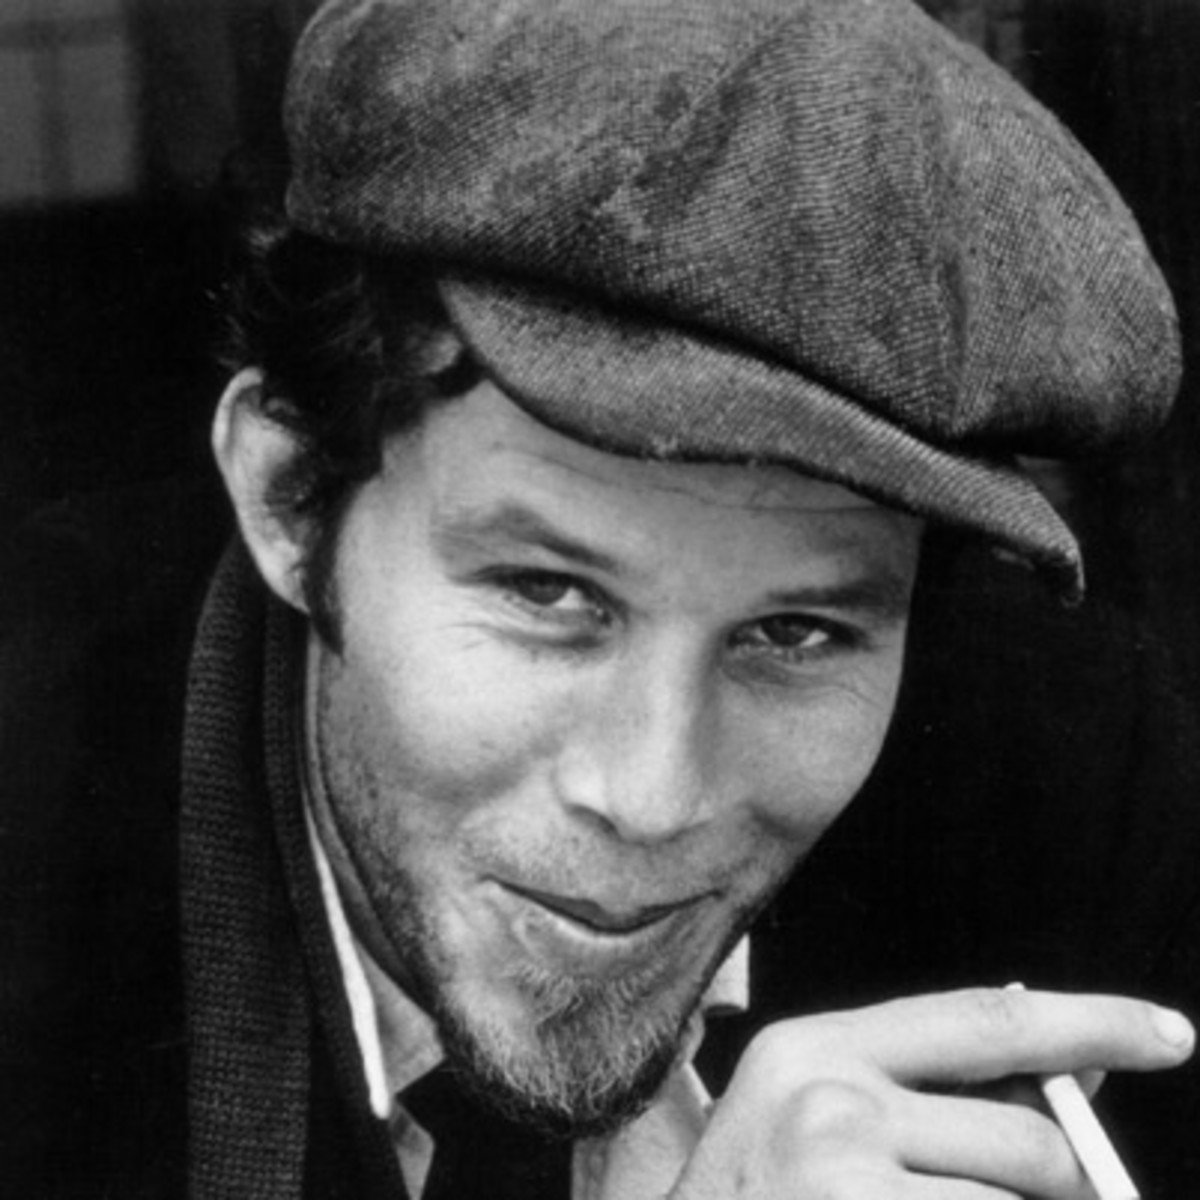 Happy birthday, Tom Waits. Love those early ballads. Always been a style icon too